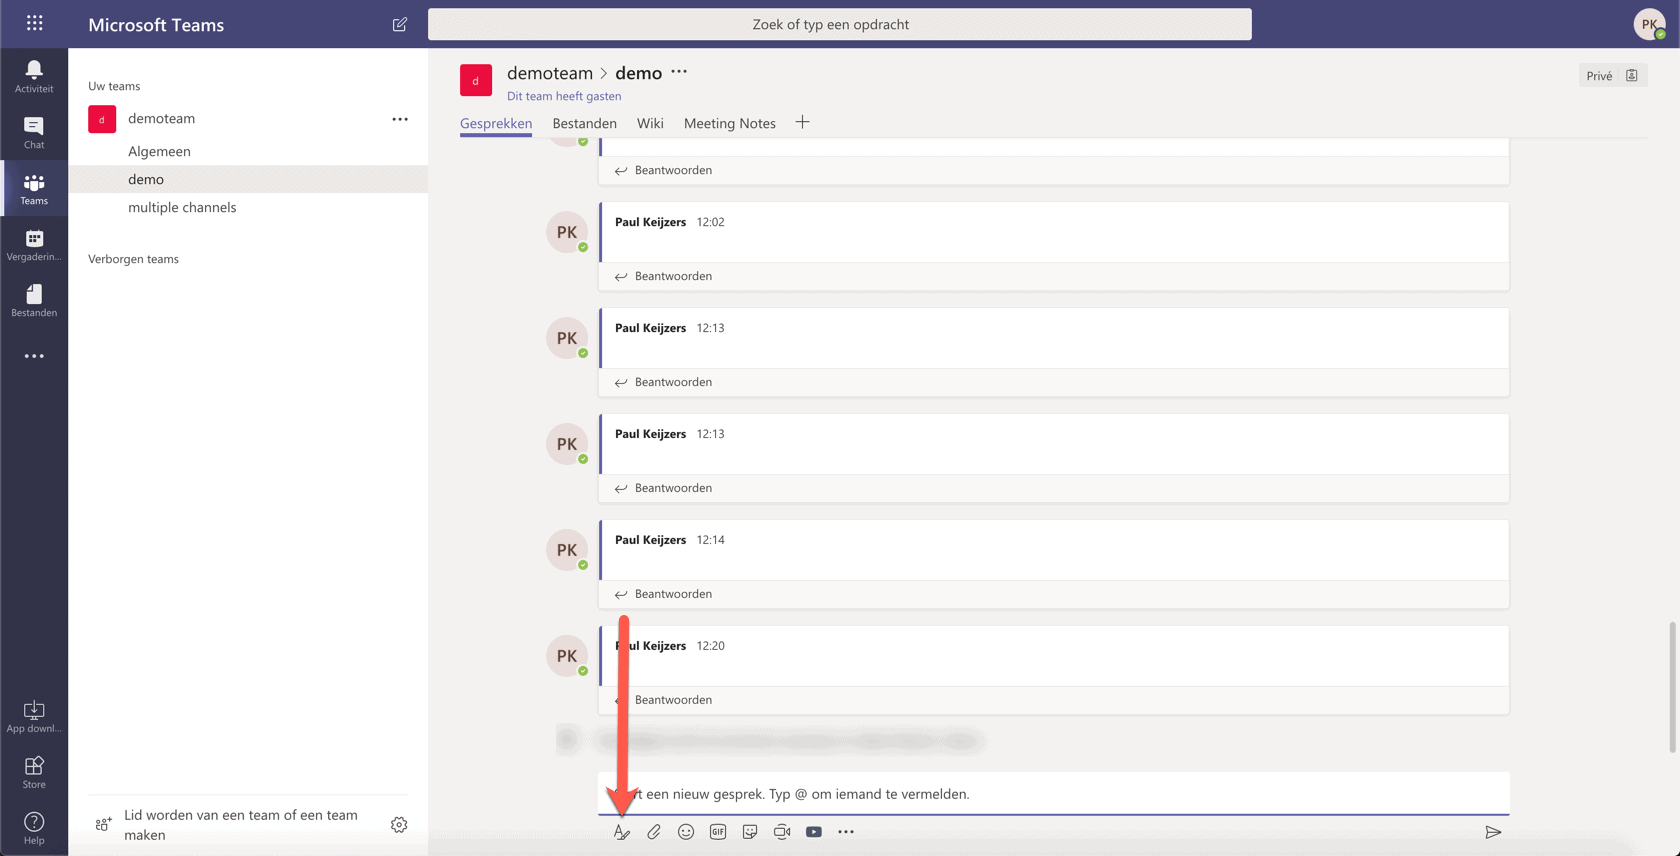 formating in Microsoft teams